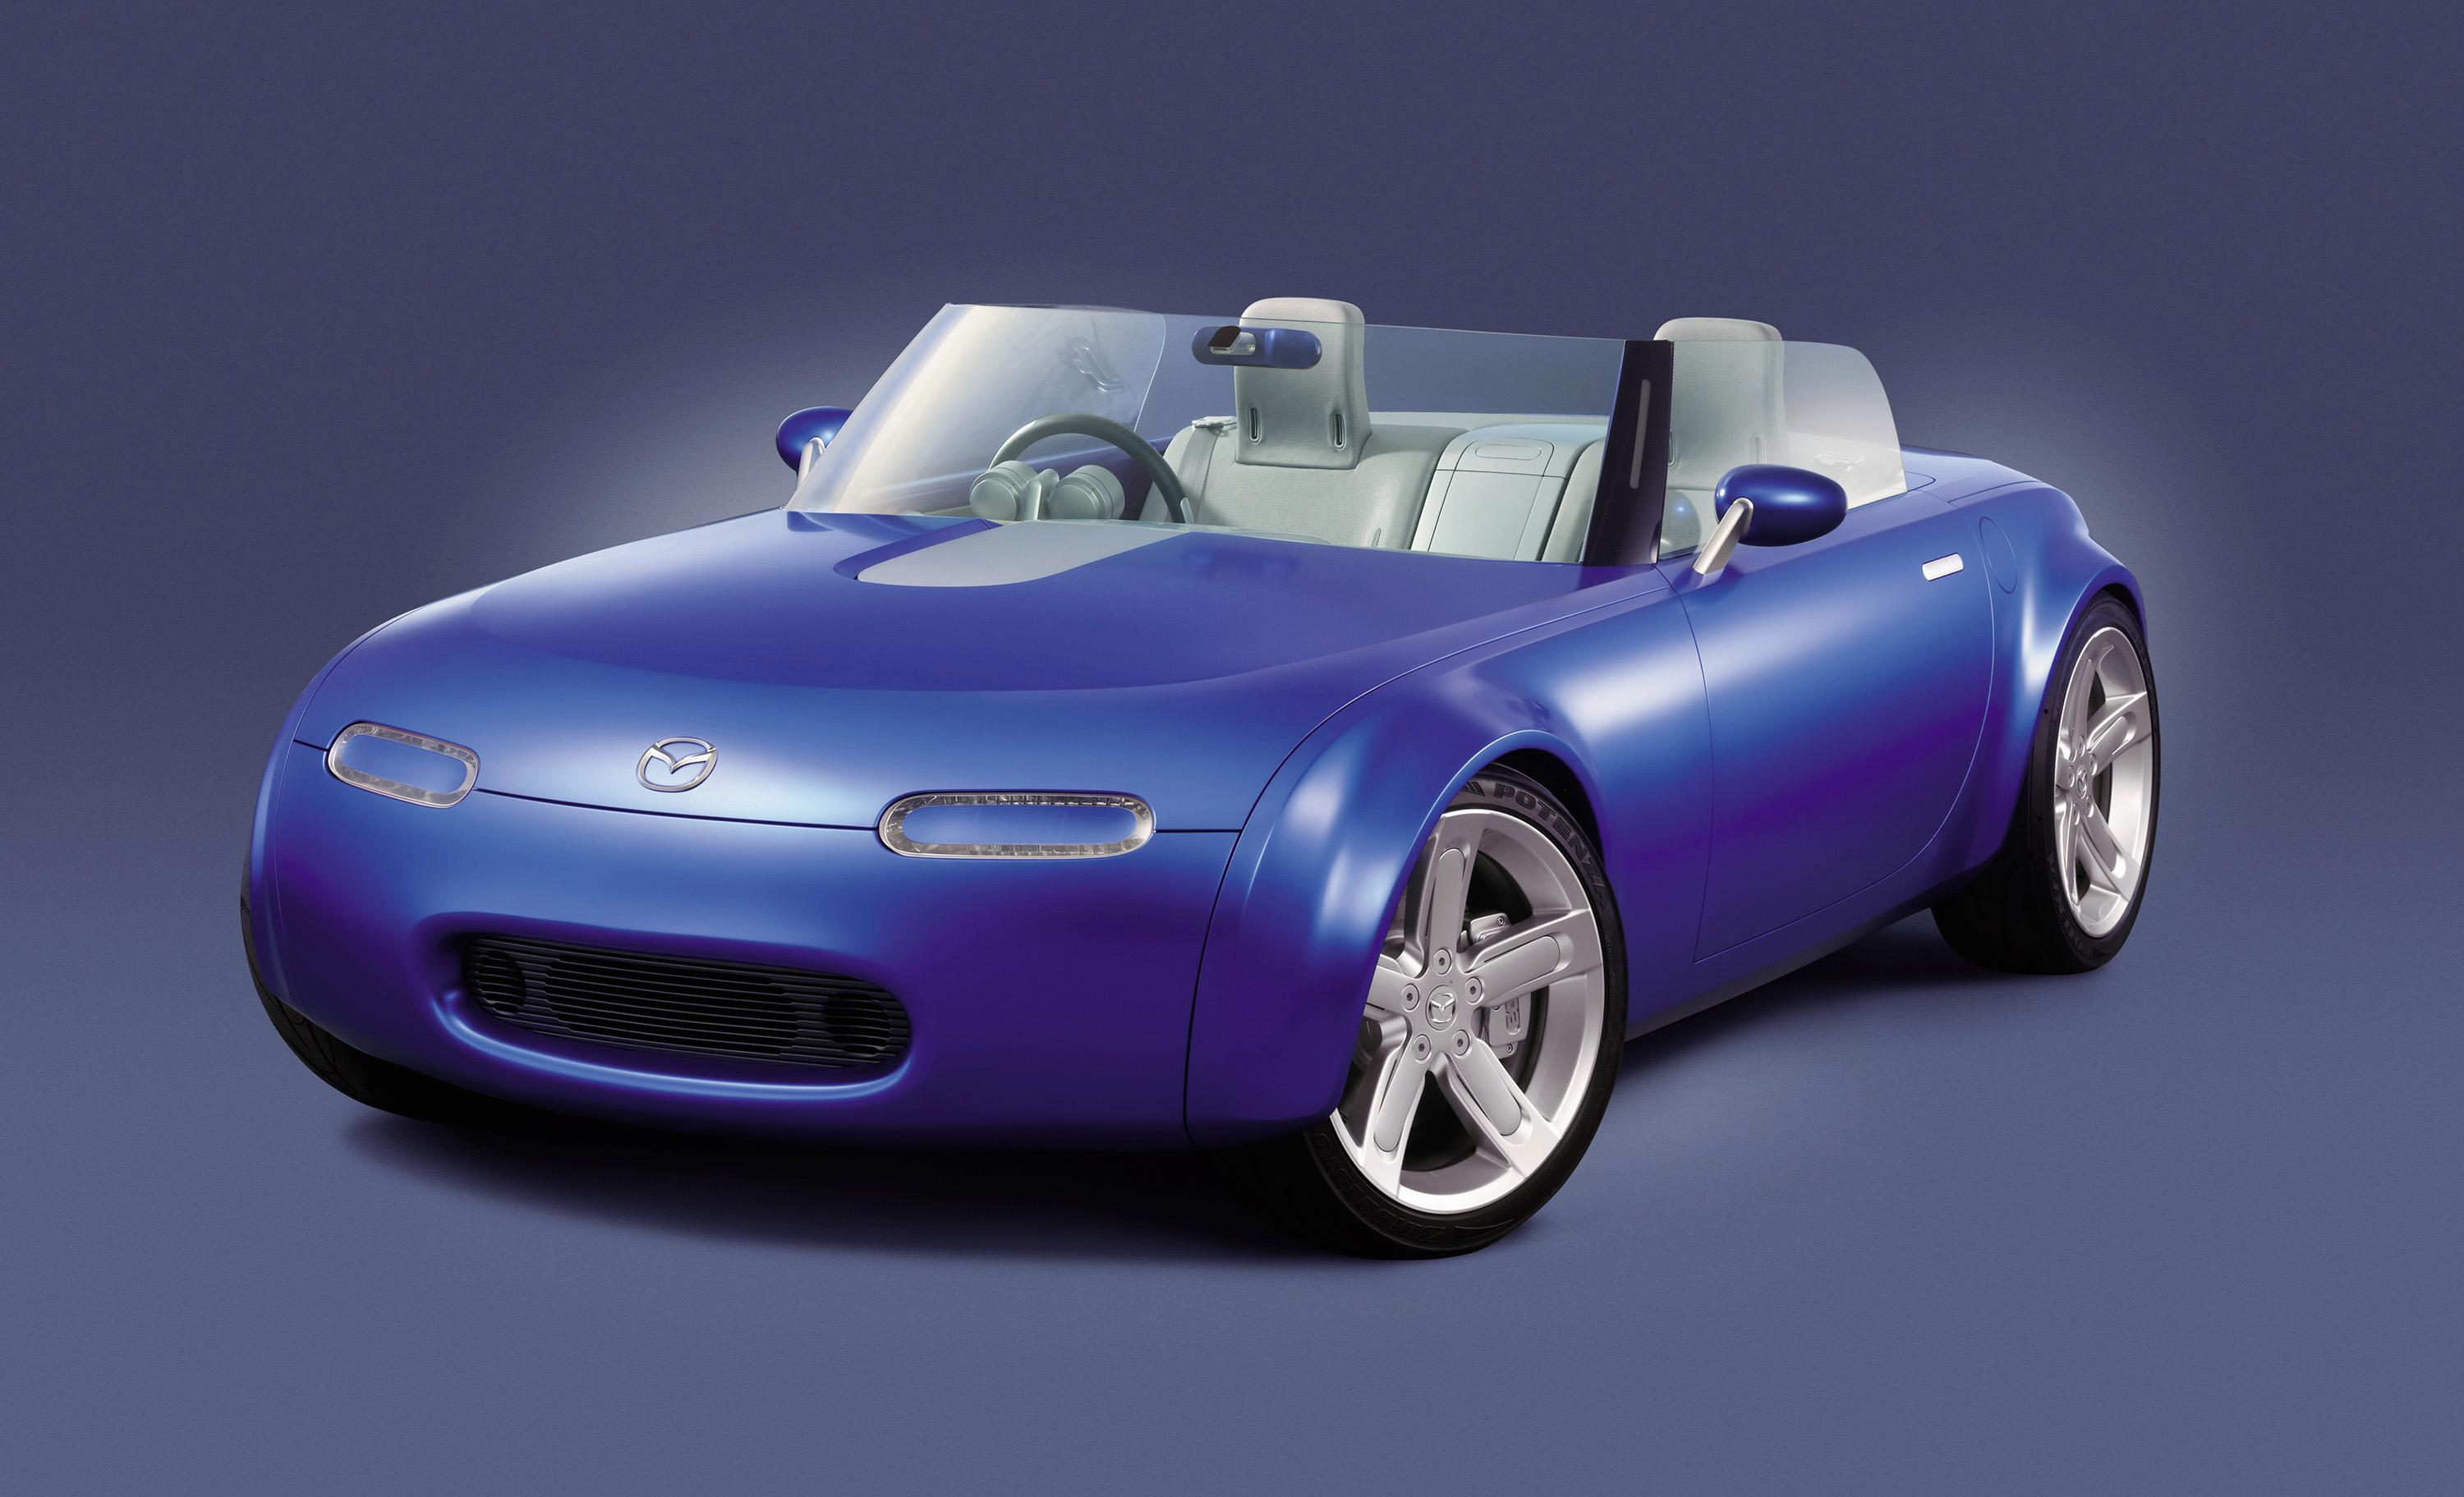 http://pictures.topspeed.com/IMG/jpg/200704/2003-mazda-ibuki-concept.jpg